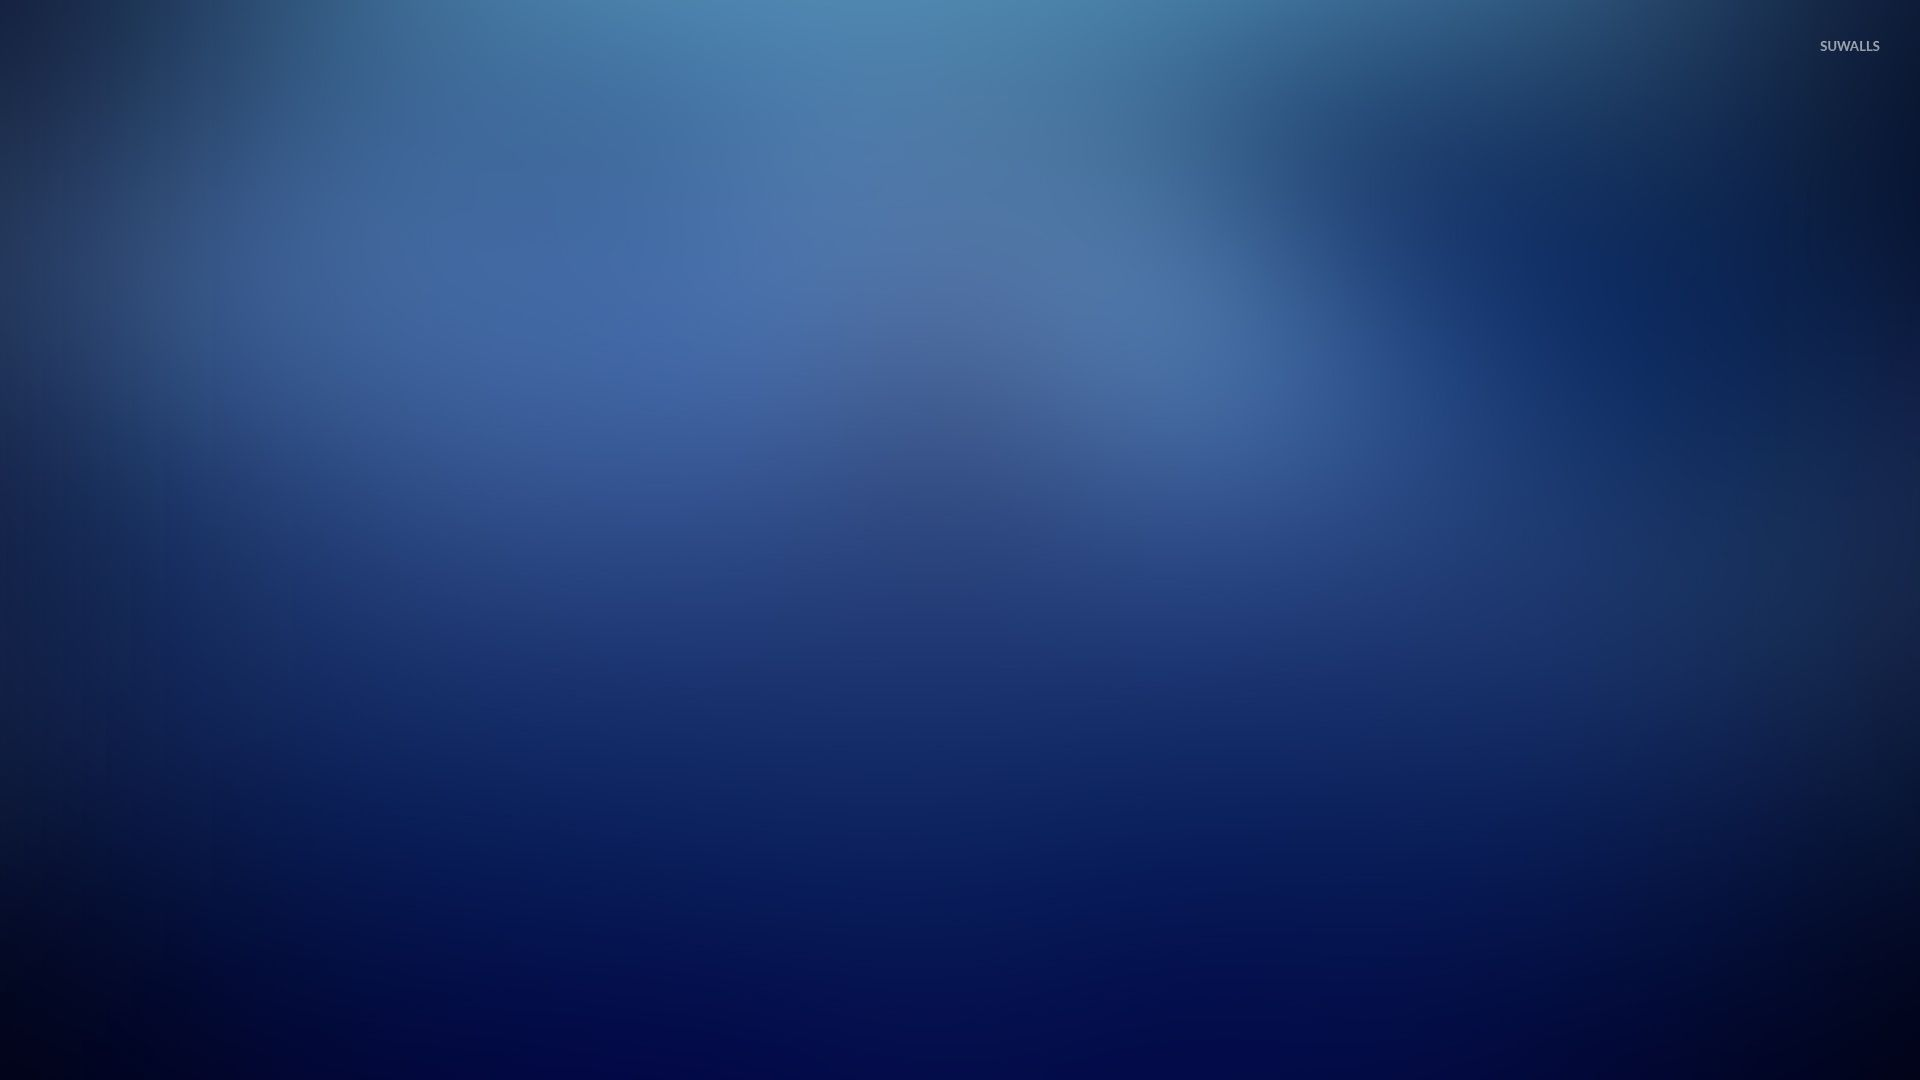 glow dark blue wallpaper - photo #1